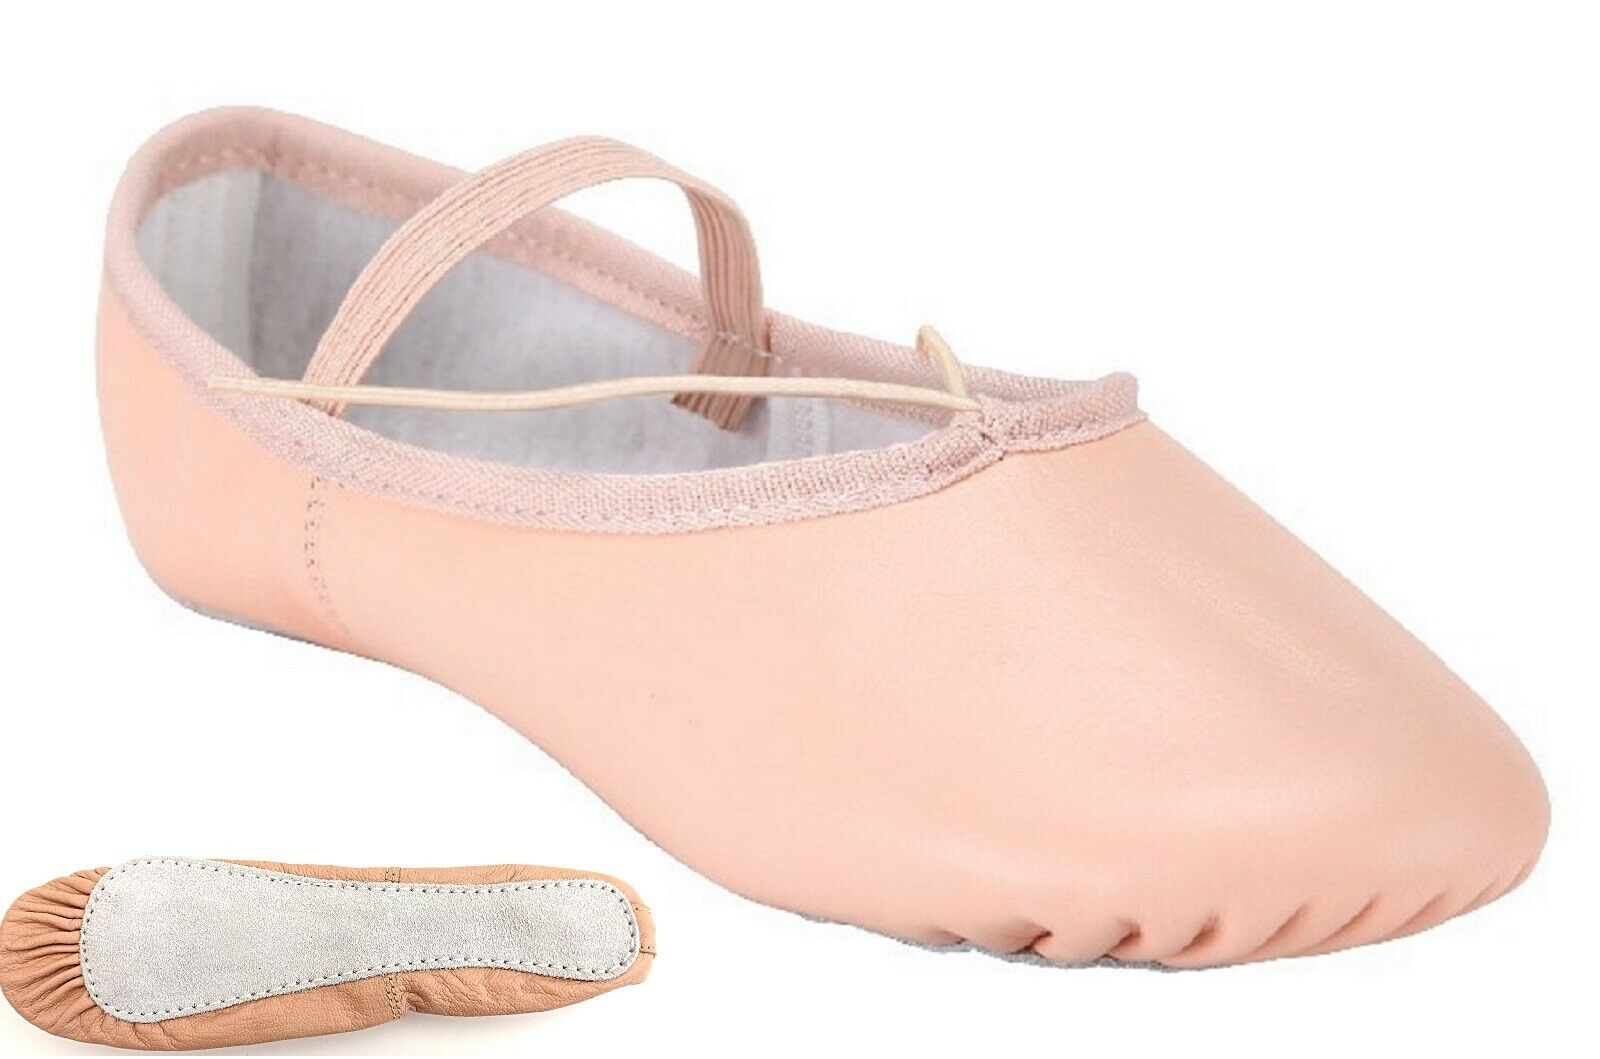 Ballet Dance Leather Shoes Full Sole Children's and Adult's Sizes Pale Pink